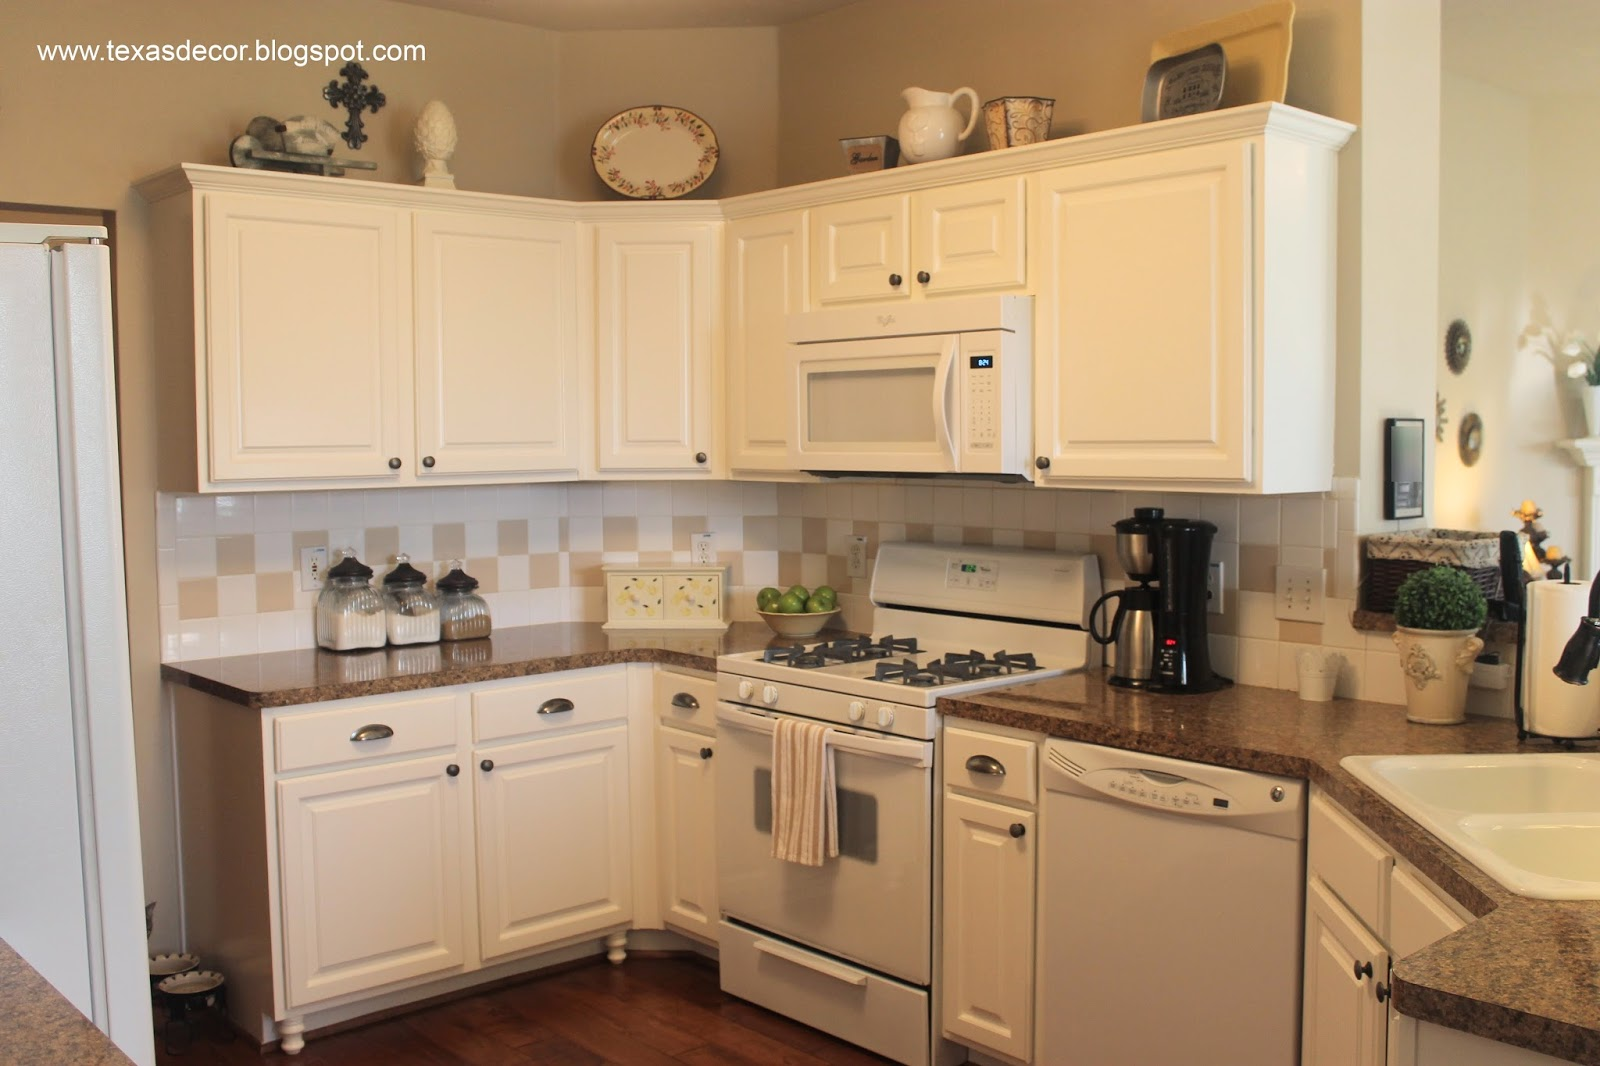 All White Kitchens With White Appliances Texas Decor Painted Kitchen Cabinet Reveal